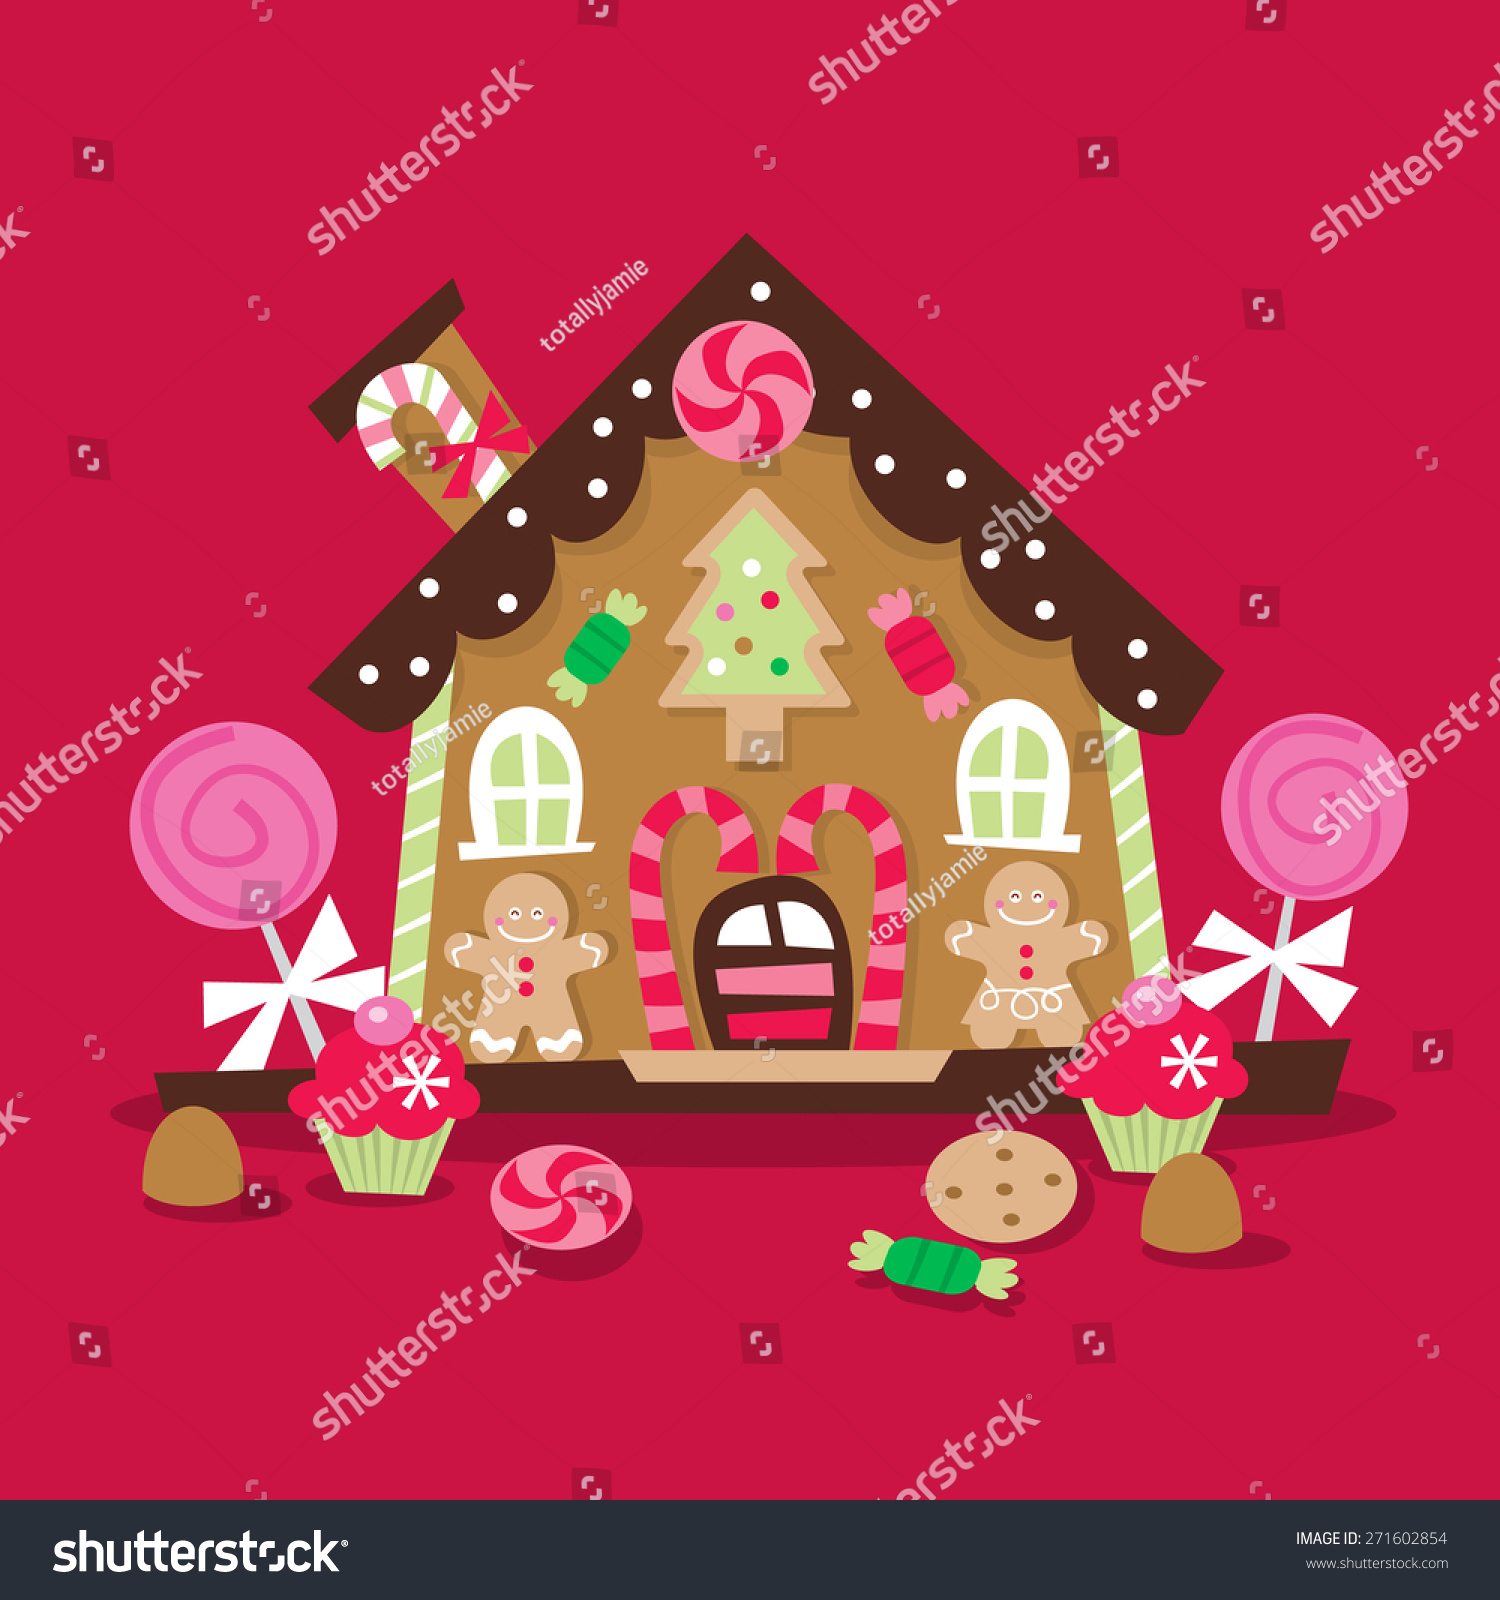 Awesome A Cartoon Vector Illustration Of A Whimsical And Retro Inspired Christmas  Gingerbread House With Lots Of Photo Gallery